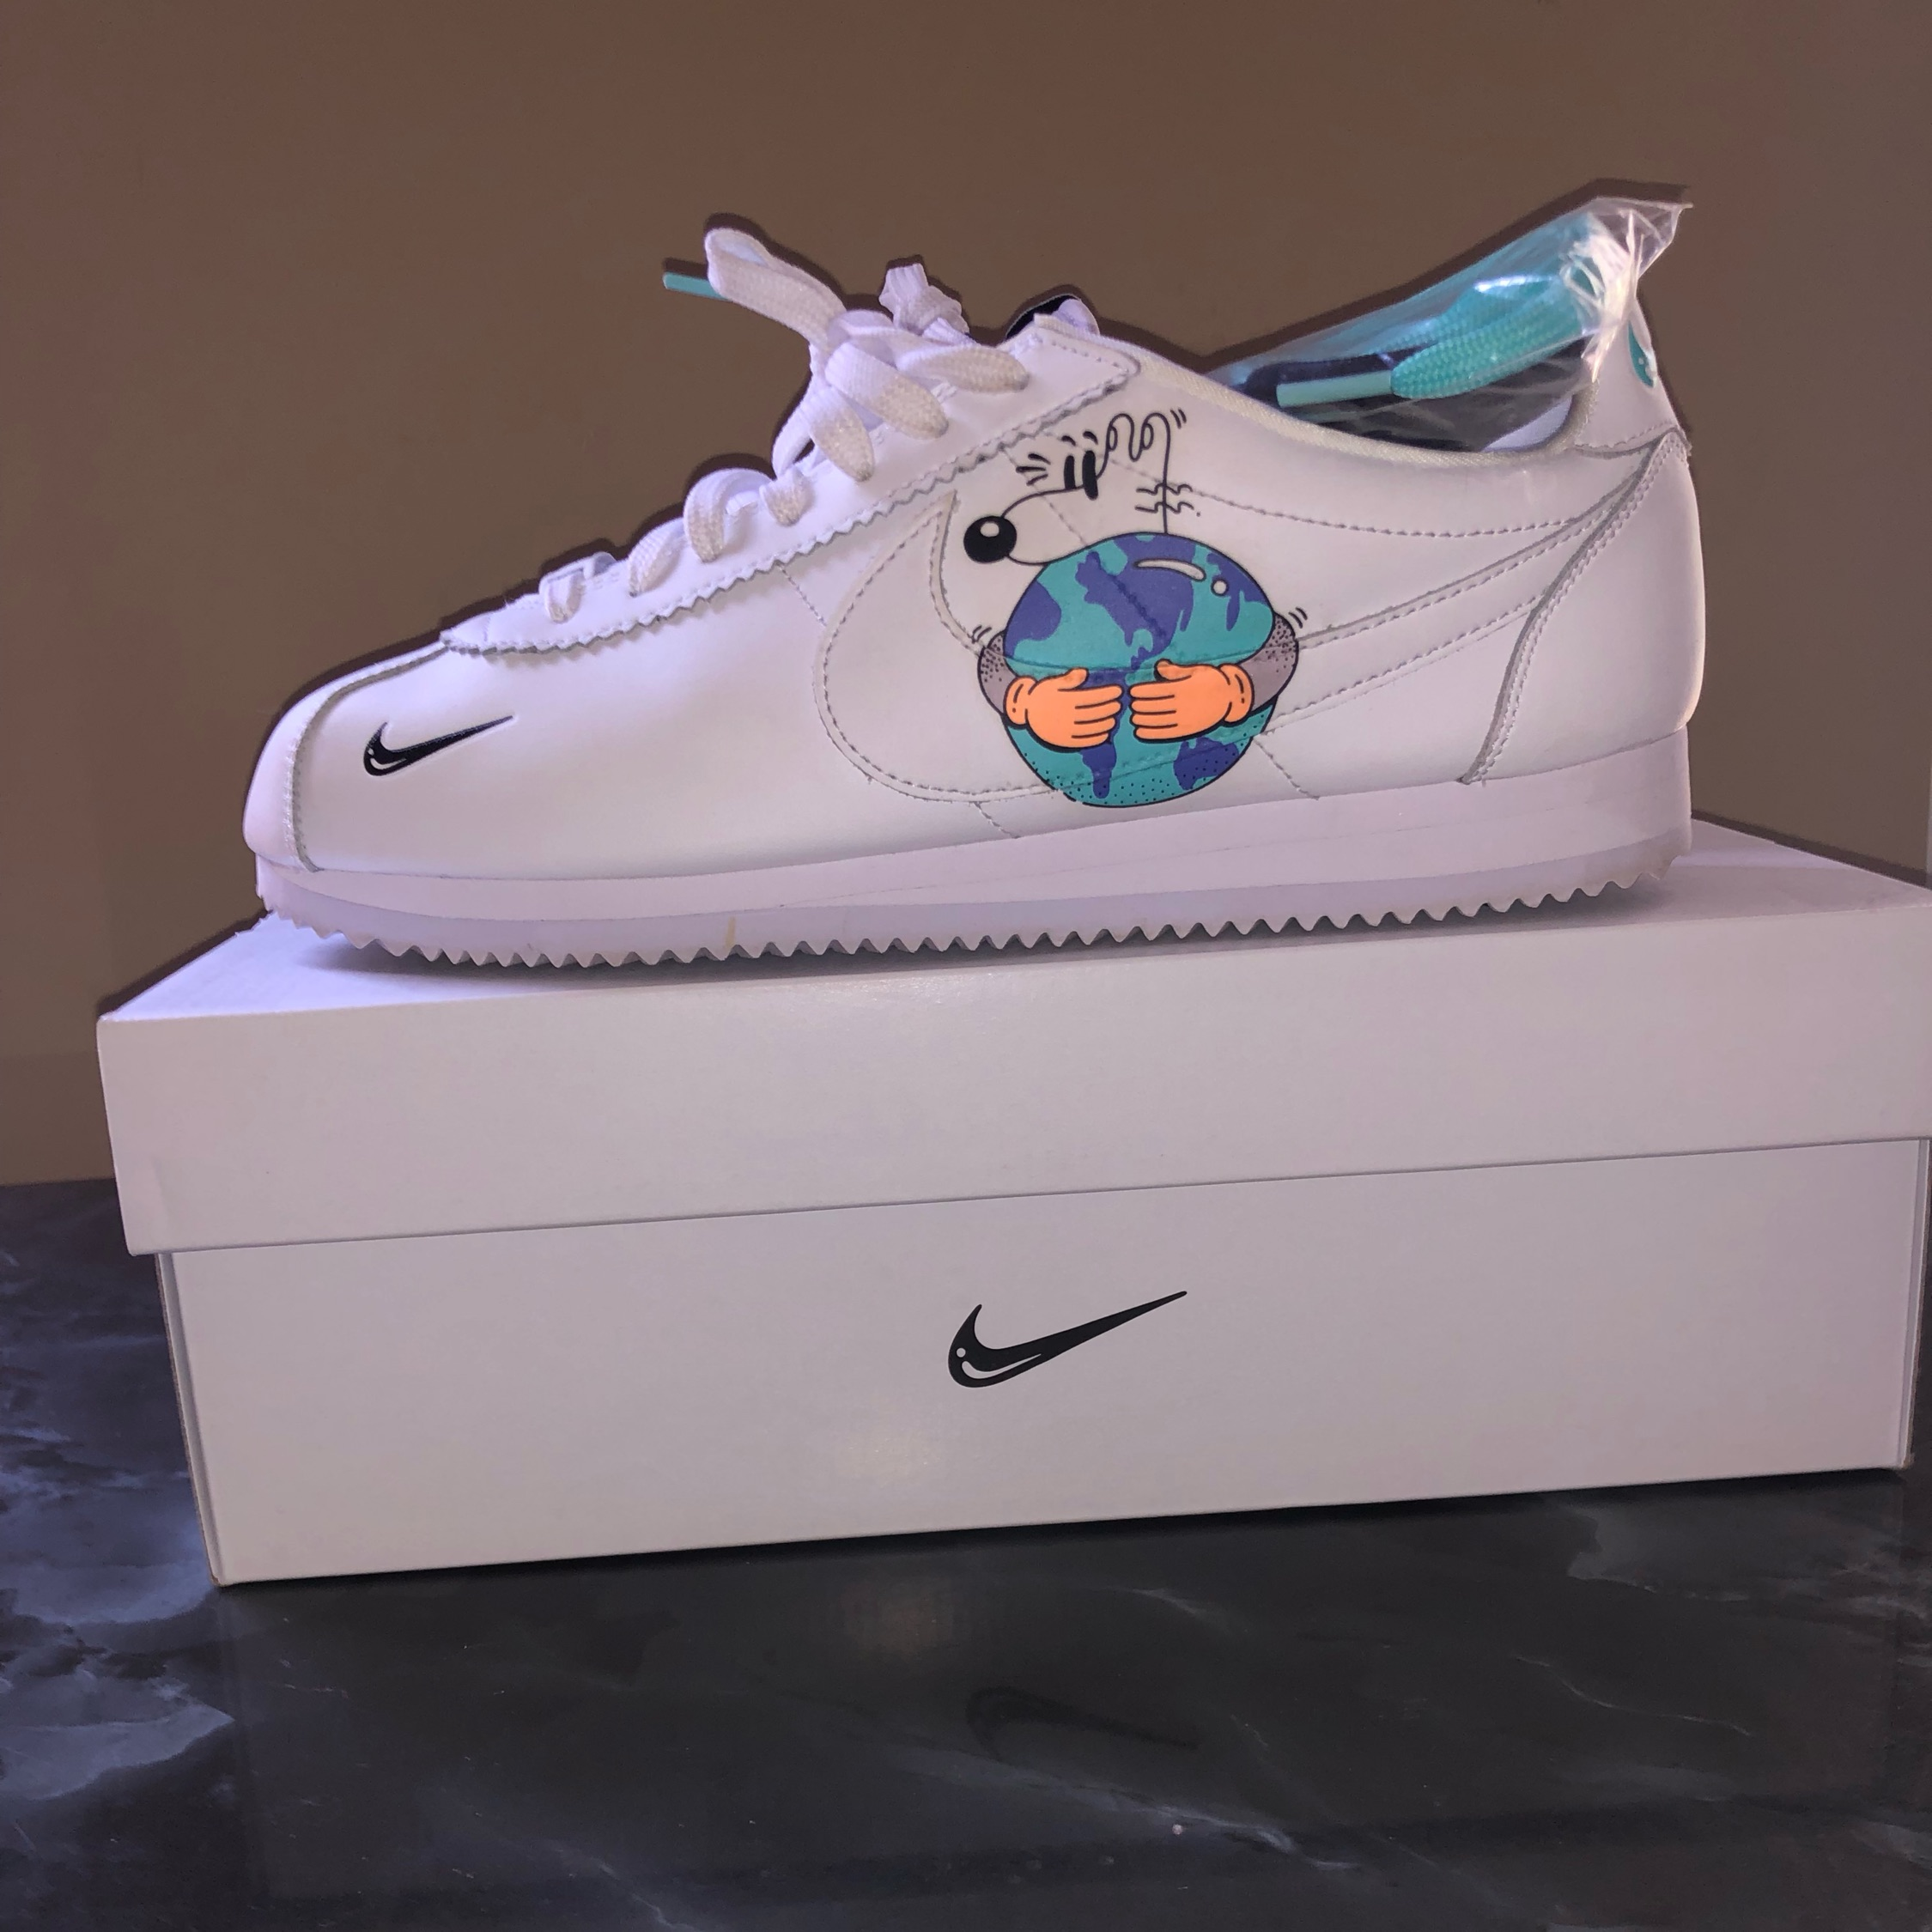 hígado Incontable Retener  Nike Cortez Earth Day